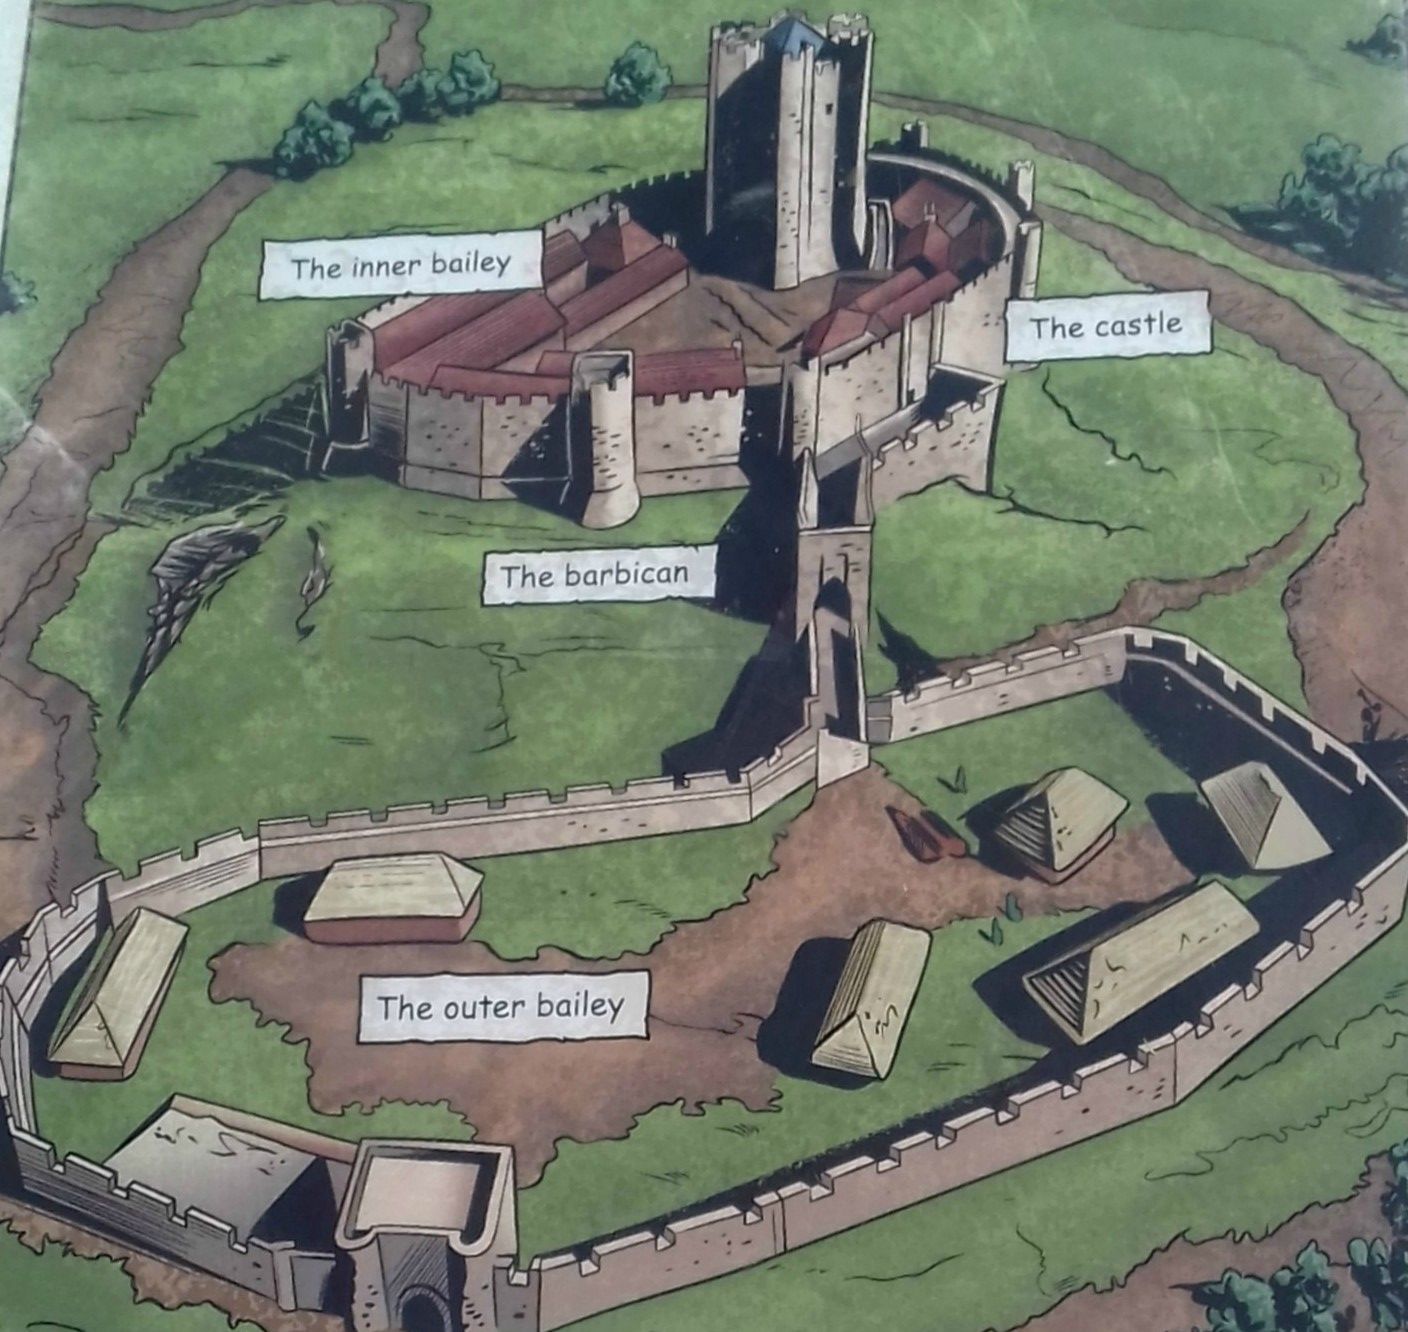 Bird's eye view of the 15th century castle+